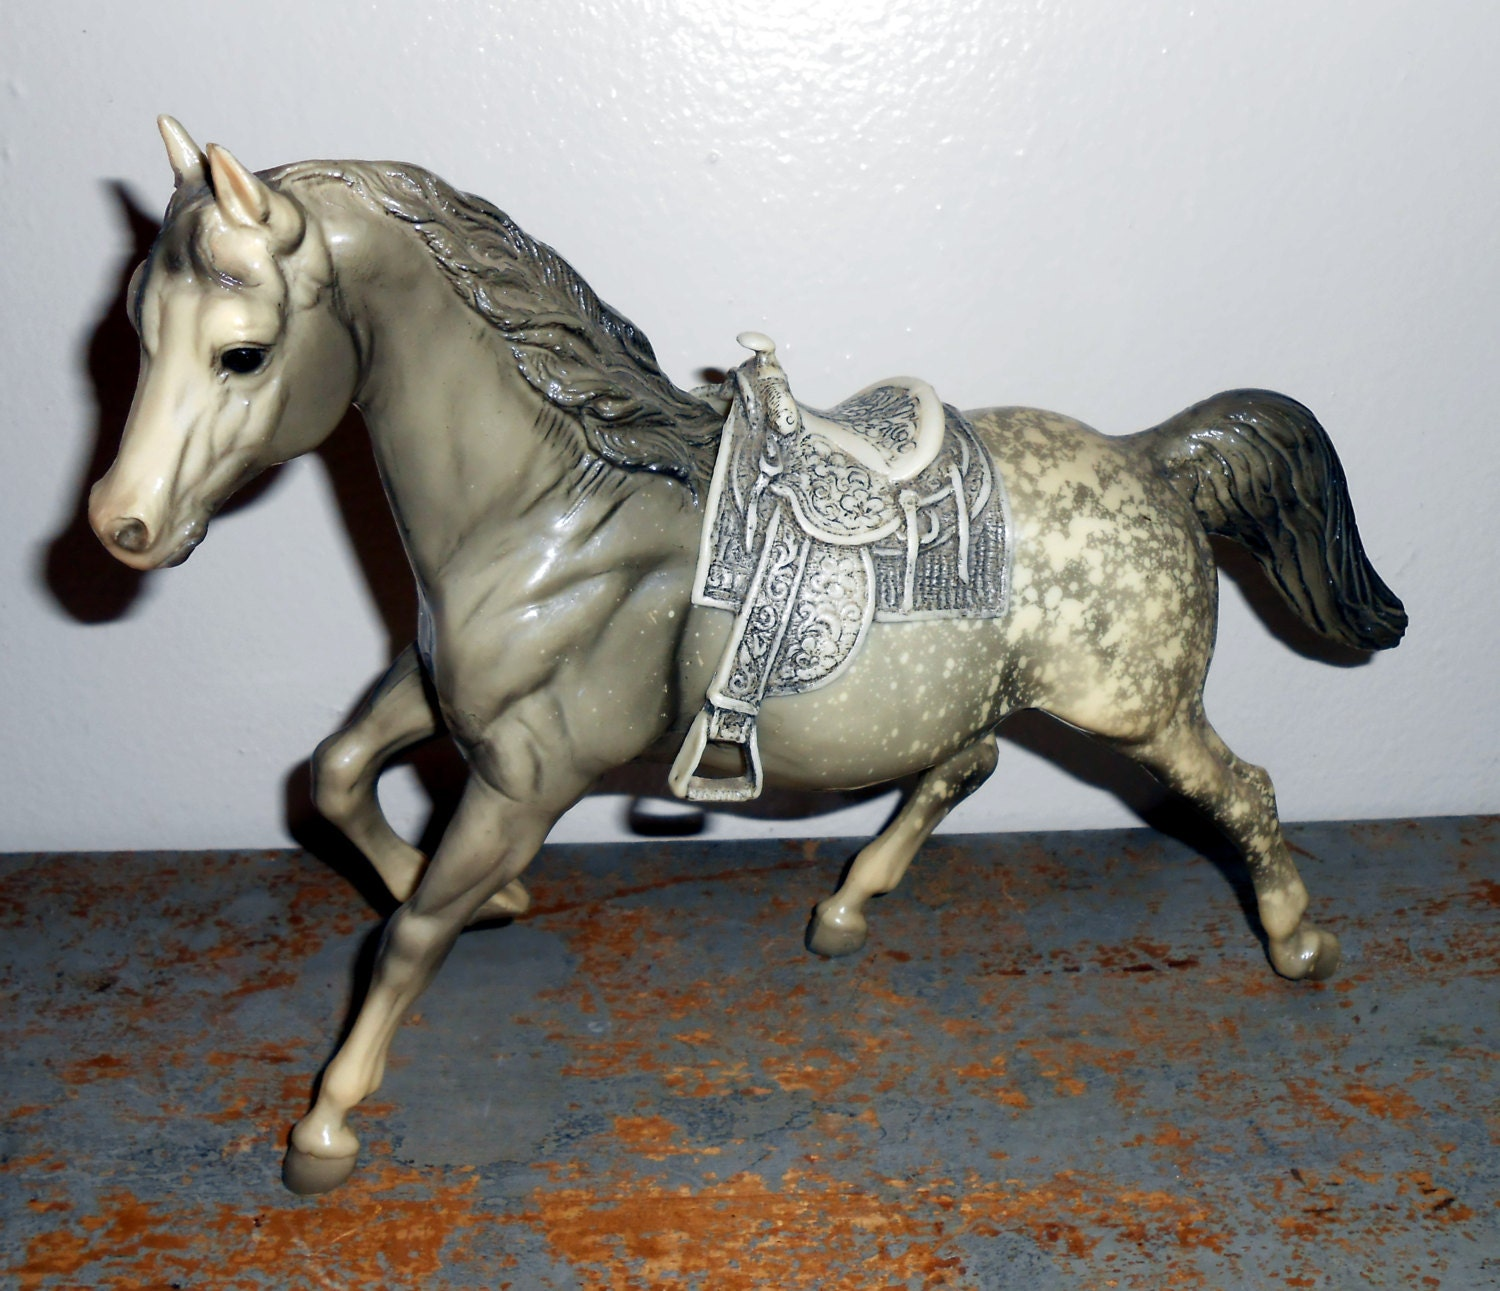 Best Breyer Horses And Horse Toys : Vintage toy breyer horse model appaloosa grey